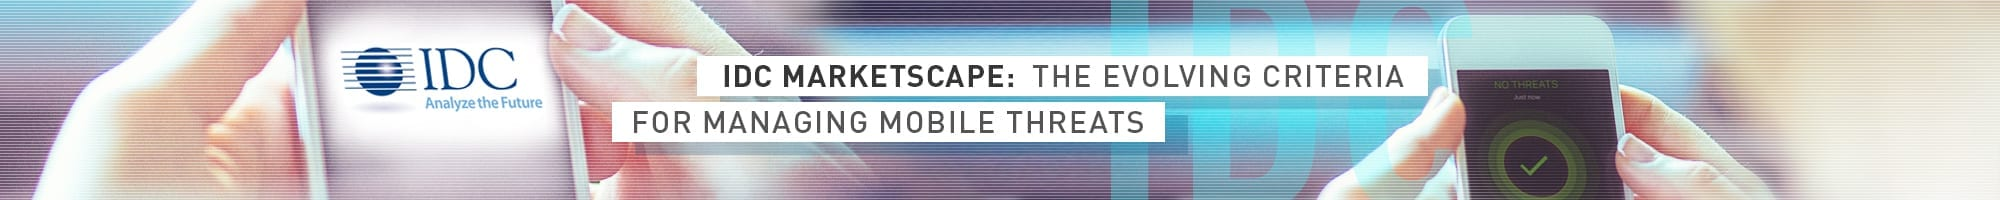 IDC Mobile Threats Banner